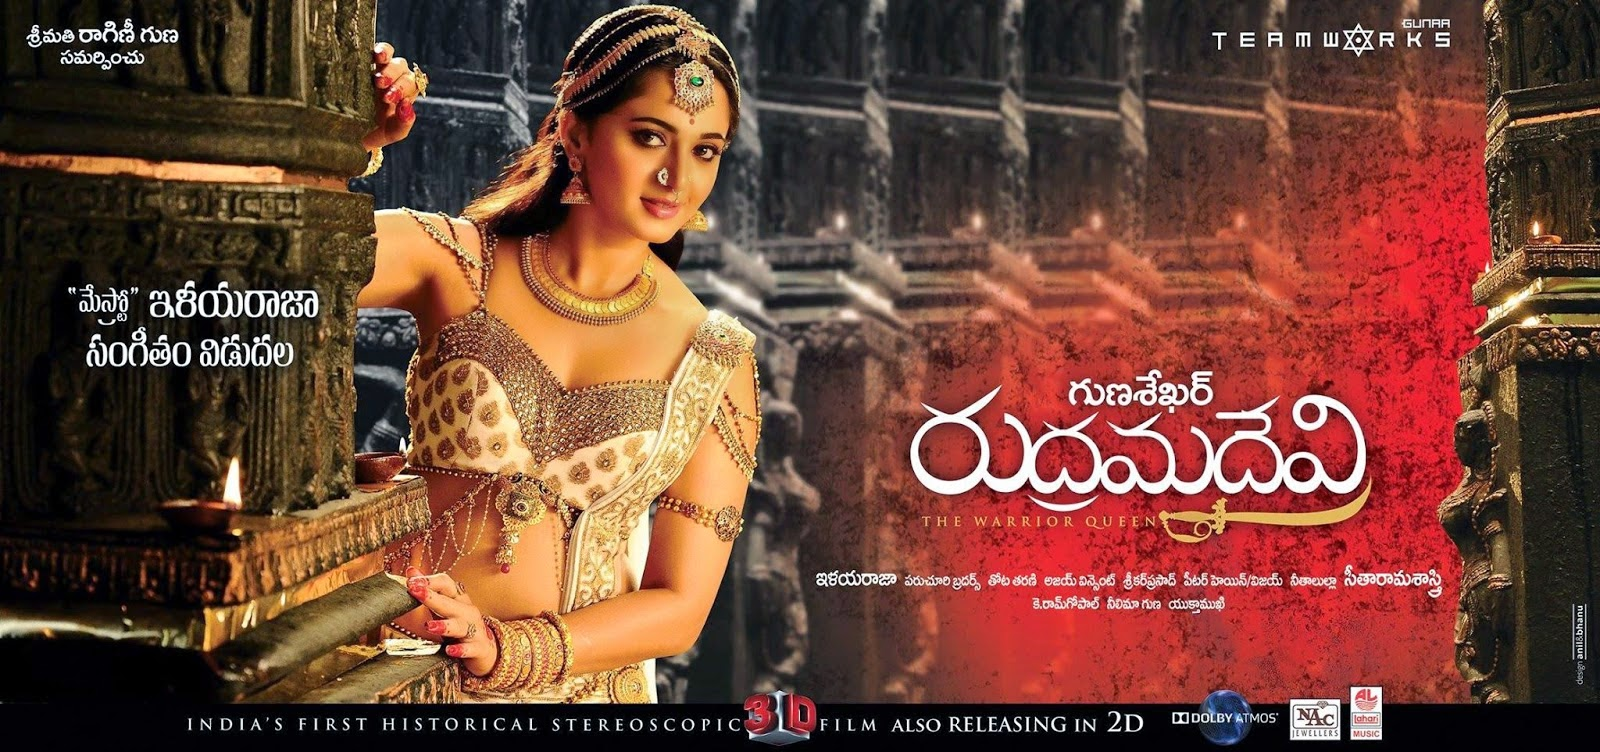 Rudhramadevi posters